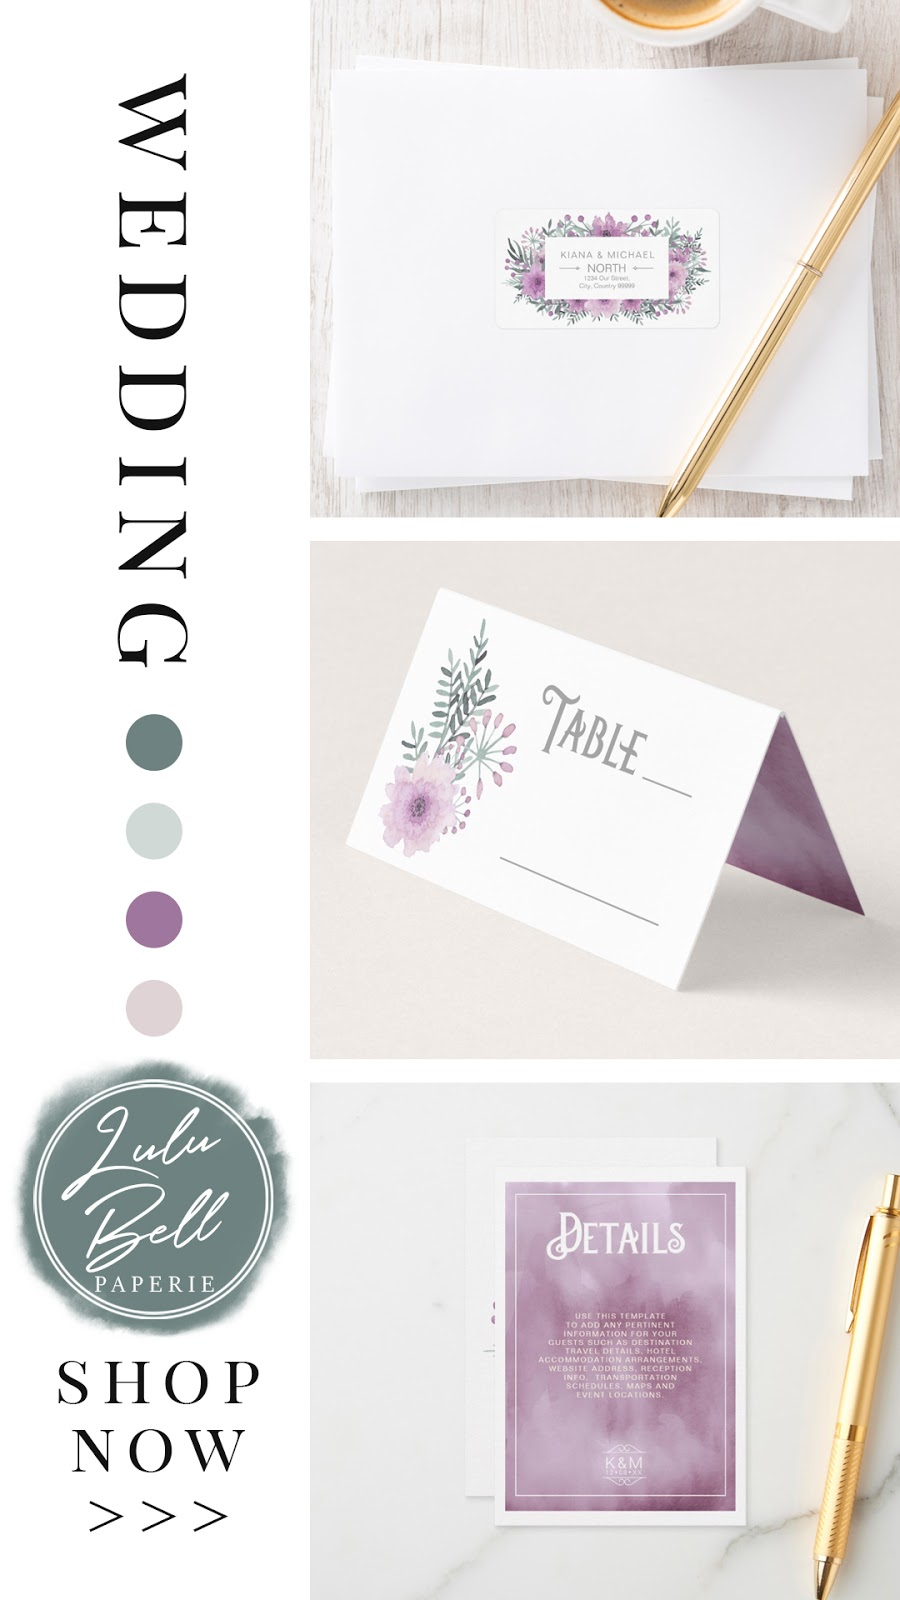 Lilac floral bouquet wedding invitation suite. Address label stickers, table number cards, and details enclosure cards all in a purple mint and blush pink colorway.